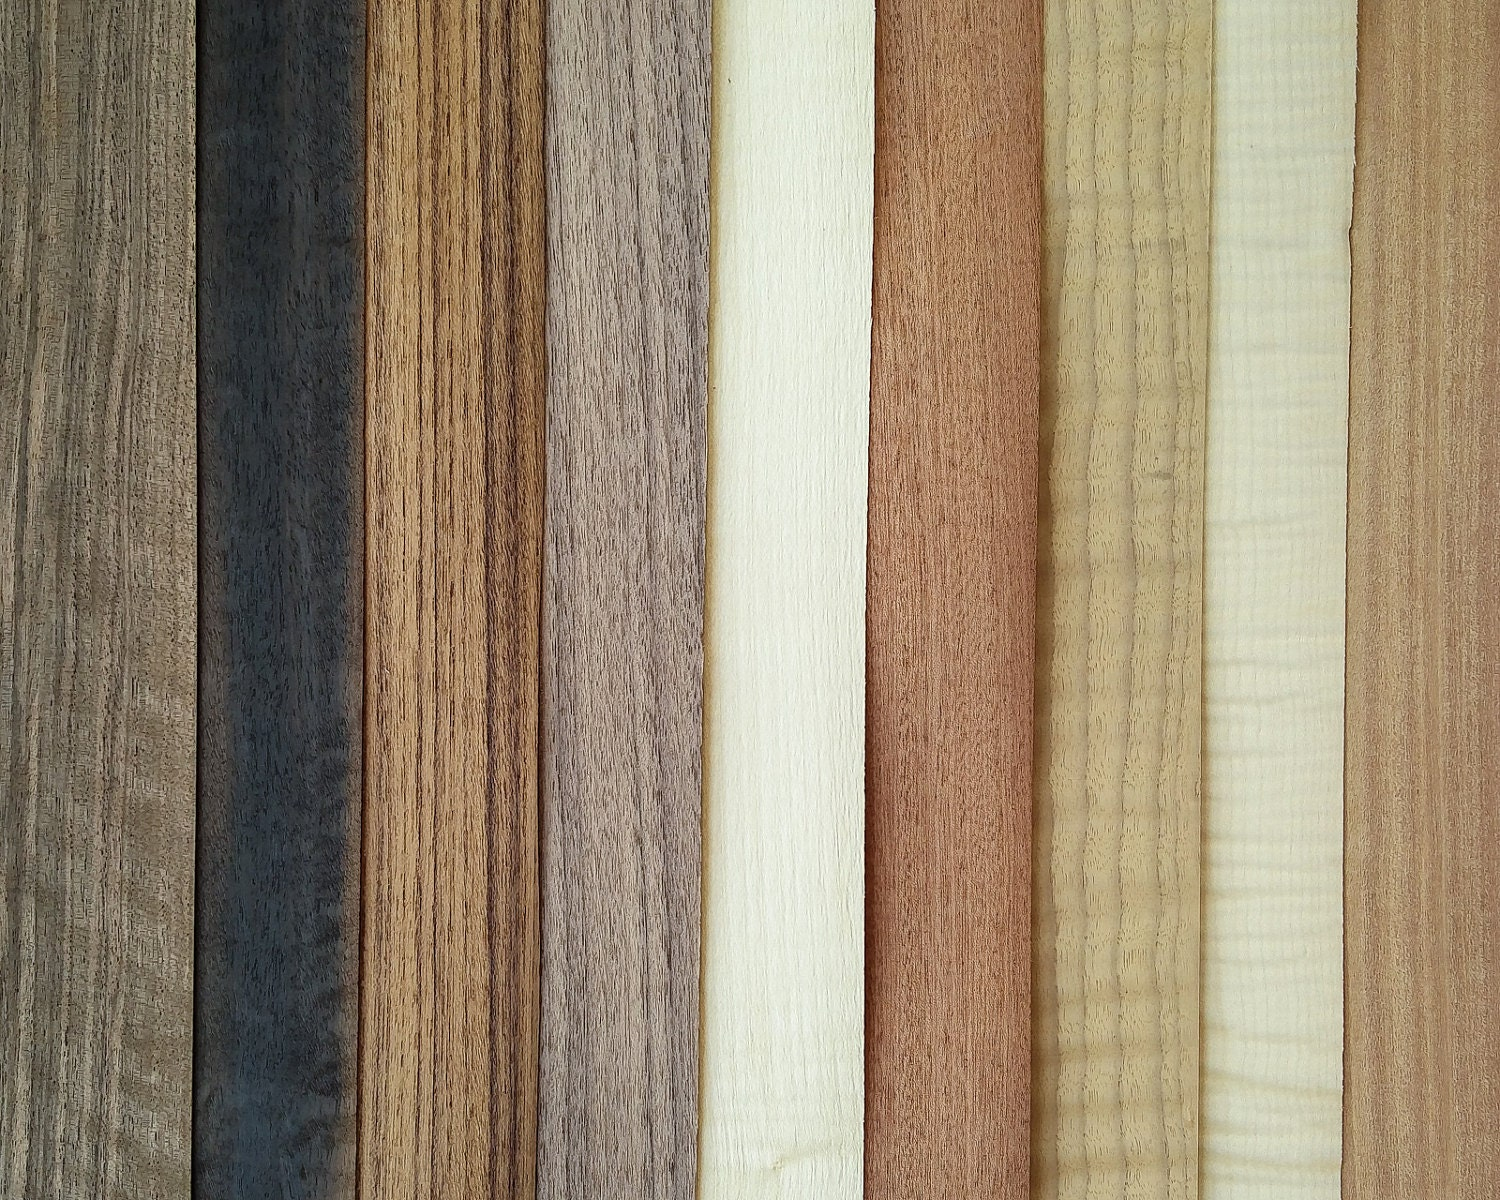 The Marquetarian's Mix #2, 9 sheets of real wood veneer [M6 ...